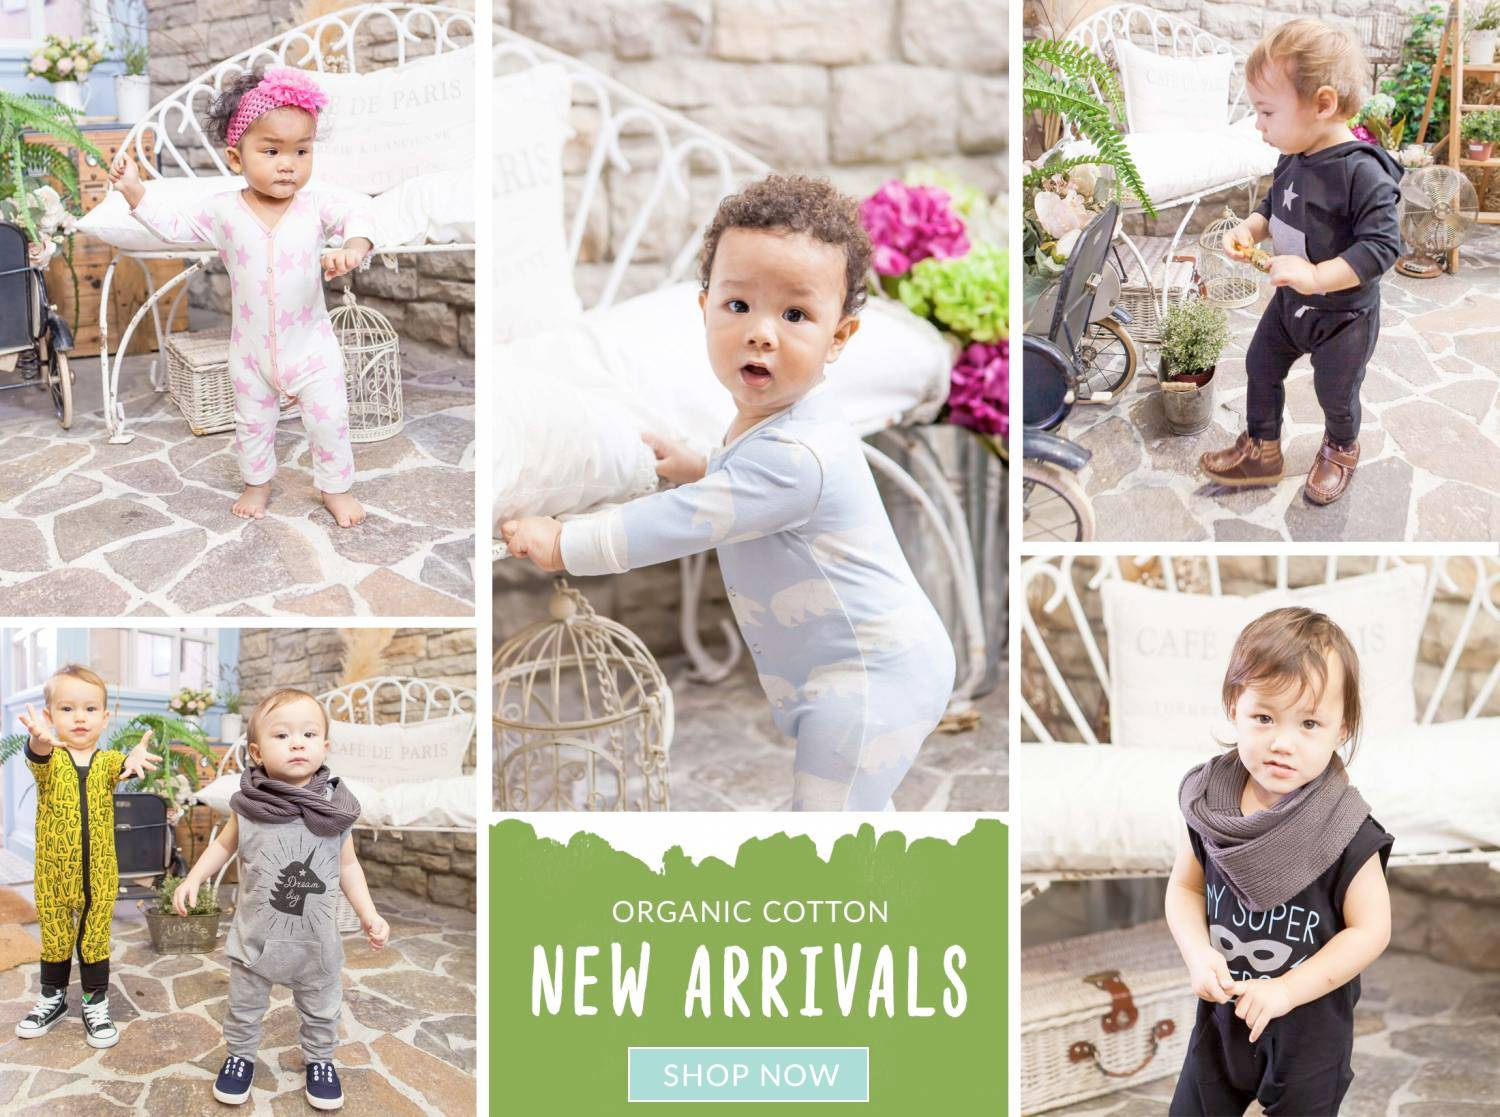 New Baby Clothing - Organic Cotton